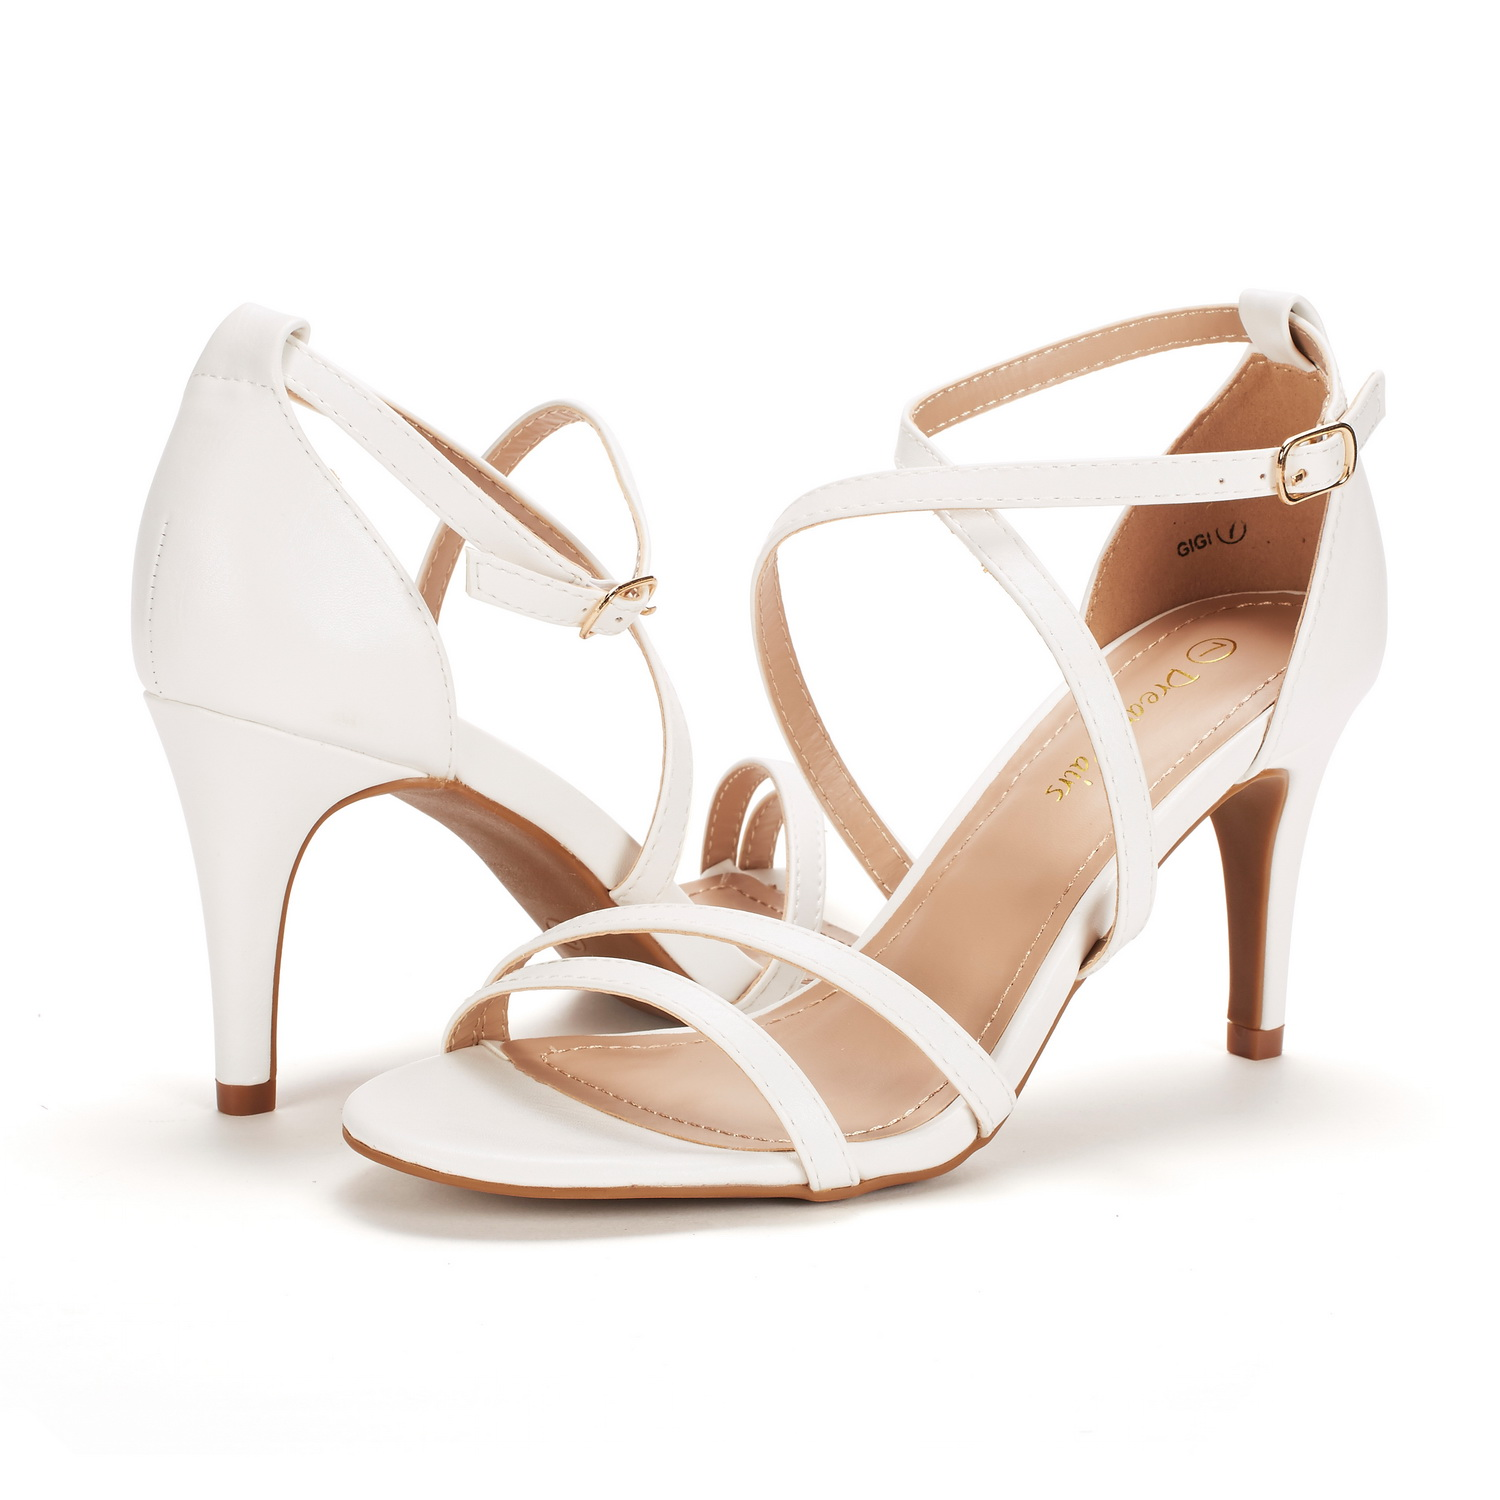 DREAM-PAIRS-Women-039-s-Ankle-Strap-High-Heel-Sandals-Dress-Shoes-Wedding-Party thumbnail 17